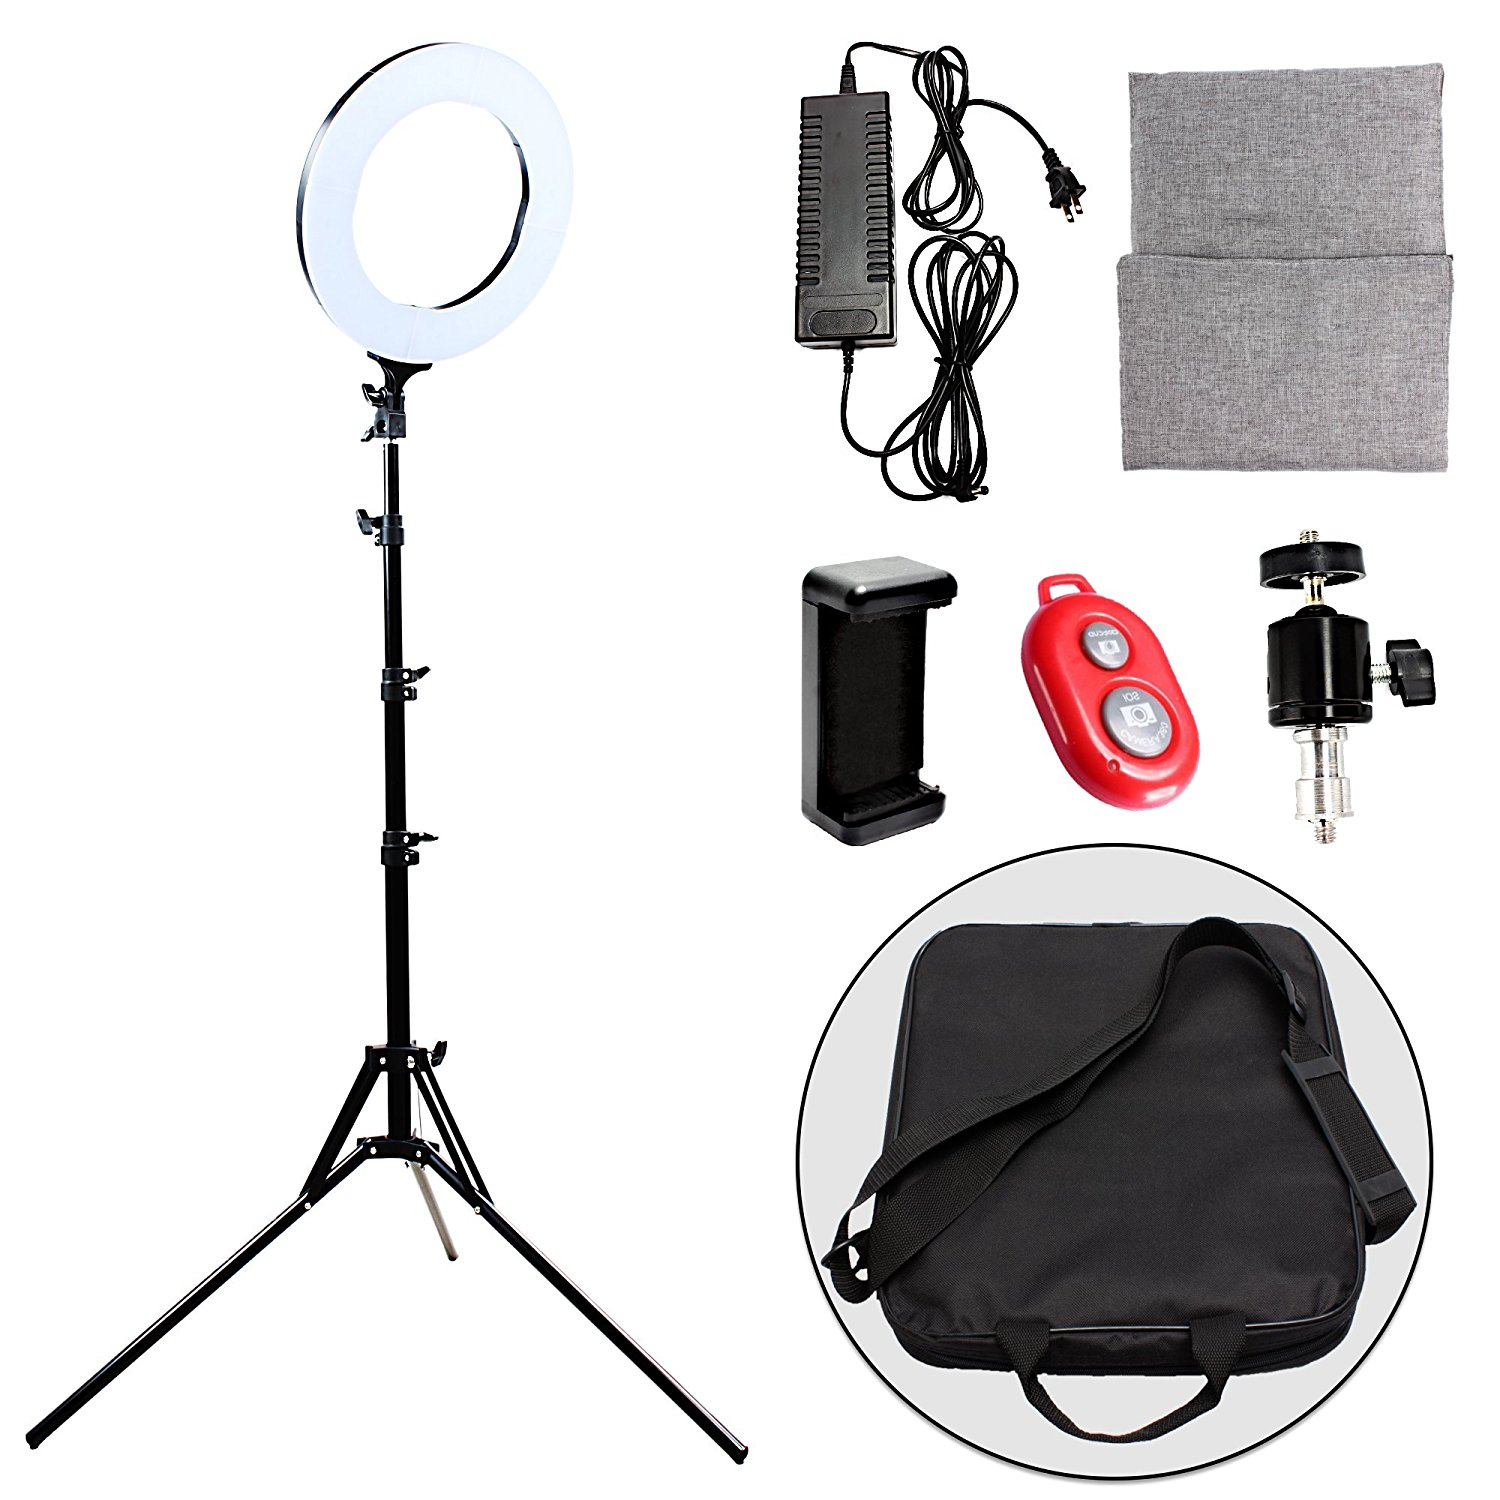 LED Ring Light 14-inch Diameter with 2m Tripod Stand,PRUNLLA 60w Bi-color 2700-5500k Dimmable LED Ring Lamp for Beauty Facial Shoot,Youtube,Facebook,Live Stream,Make-up artist